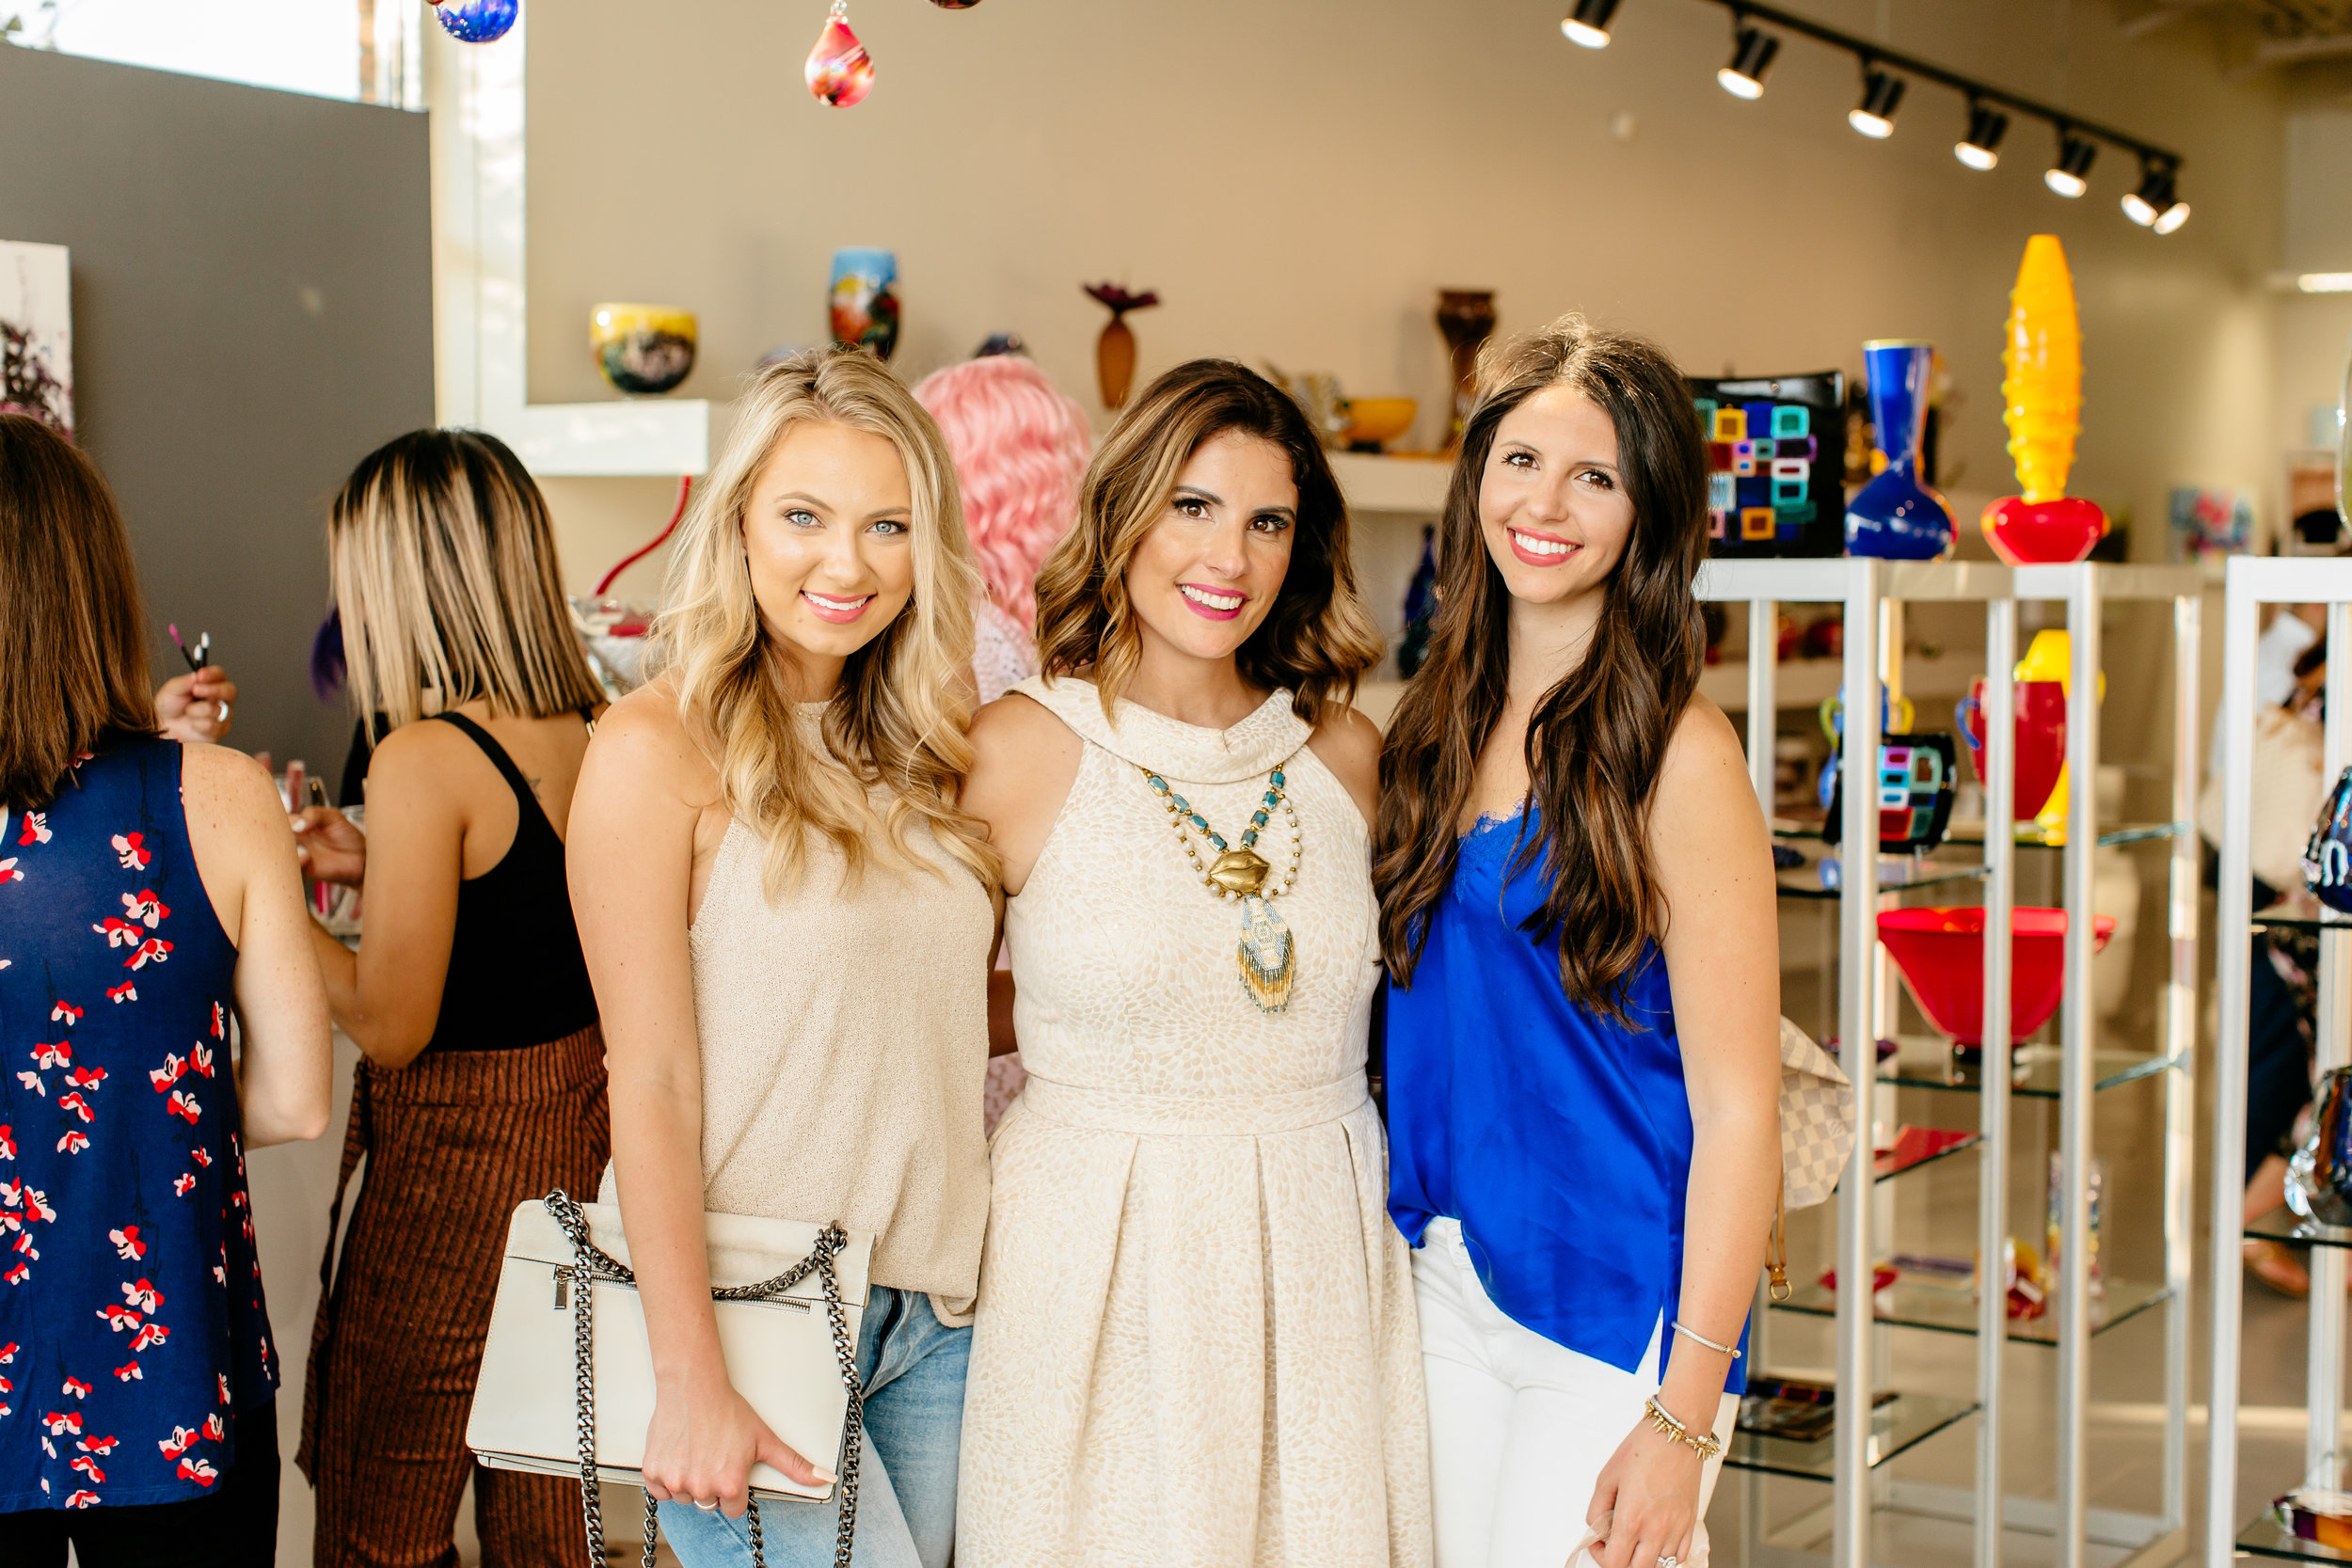 Alexa-Vossler-Photo_Dallas-Event-Photographer_Brite-Bar-Beauty-2018-Lipstick-Launch-Party-148.jpg